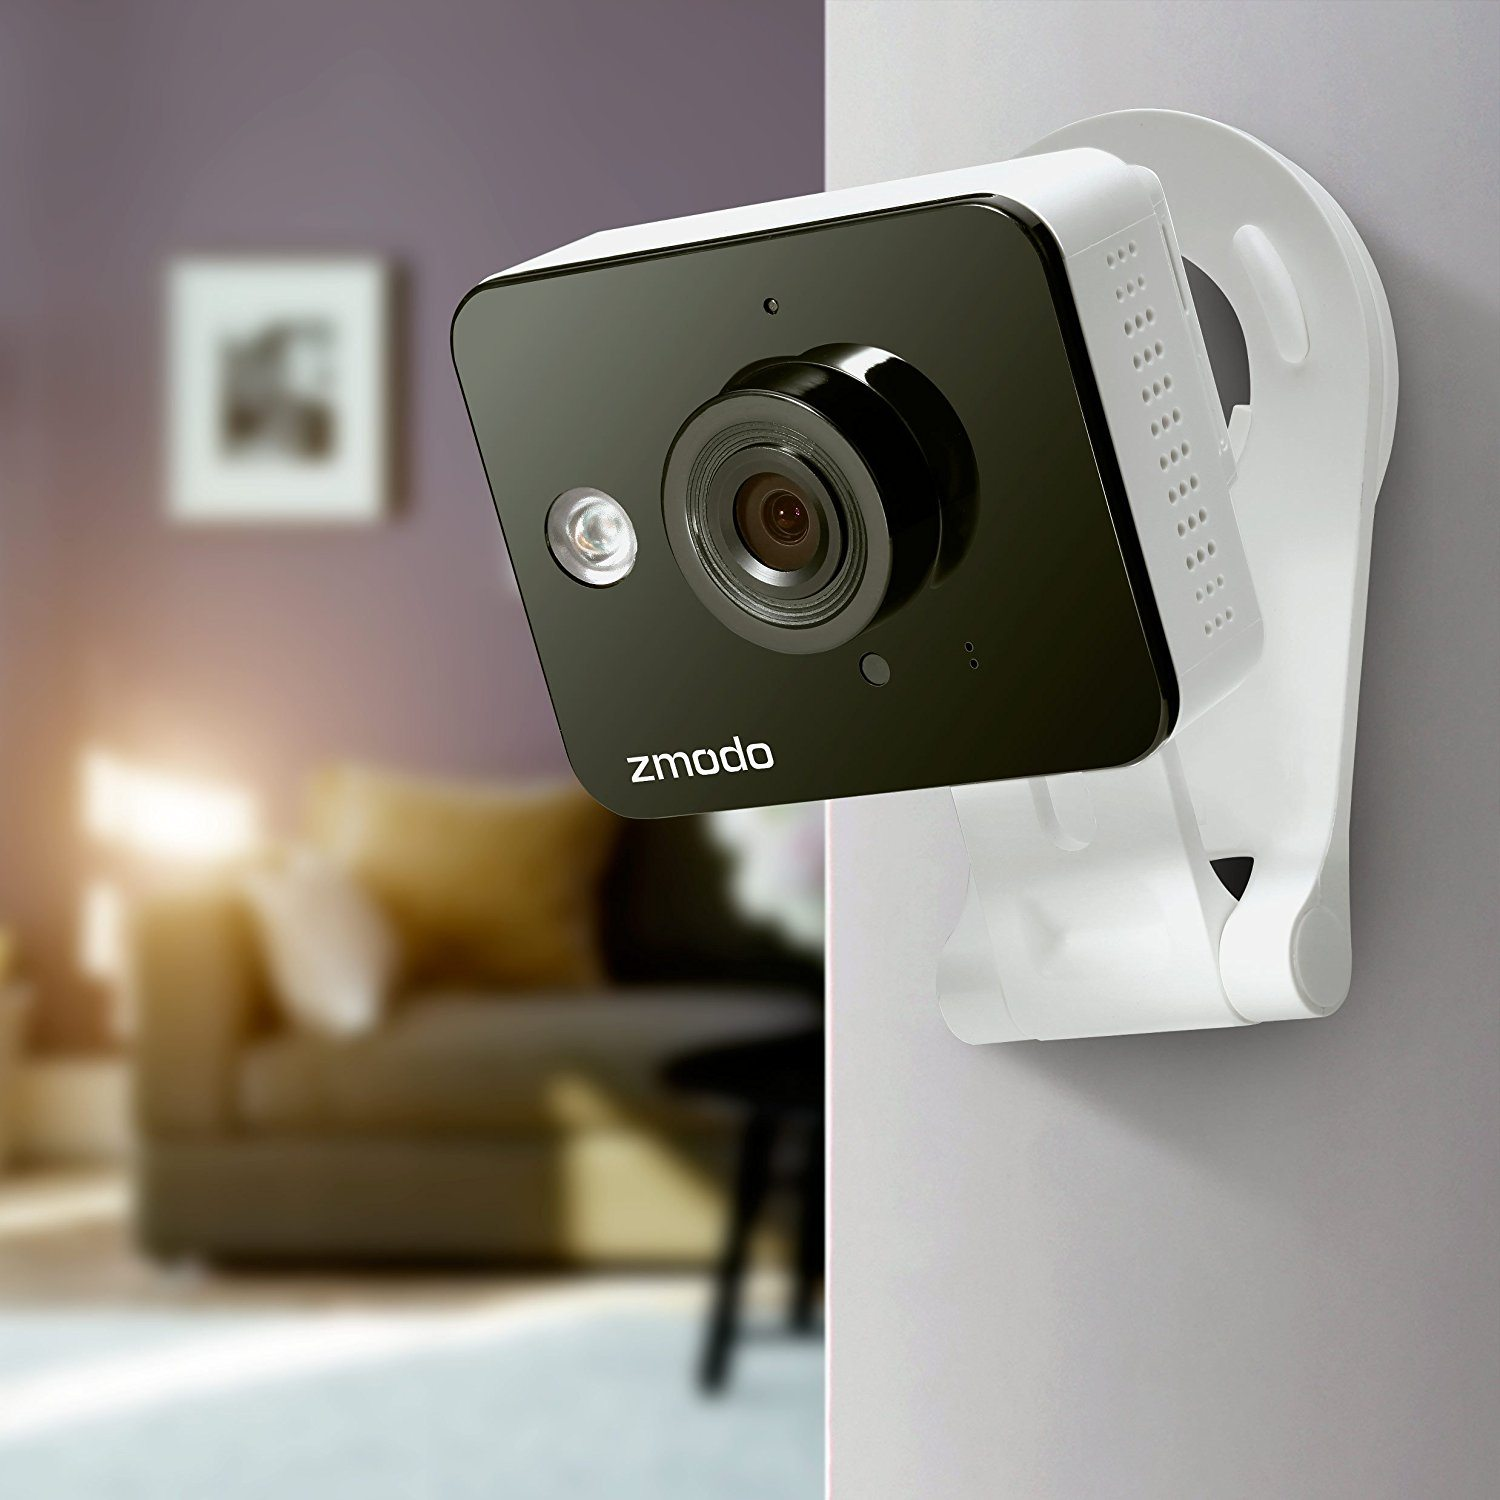 Zmodo HD WiFi Wireless Home Security Camera System